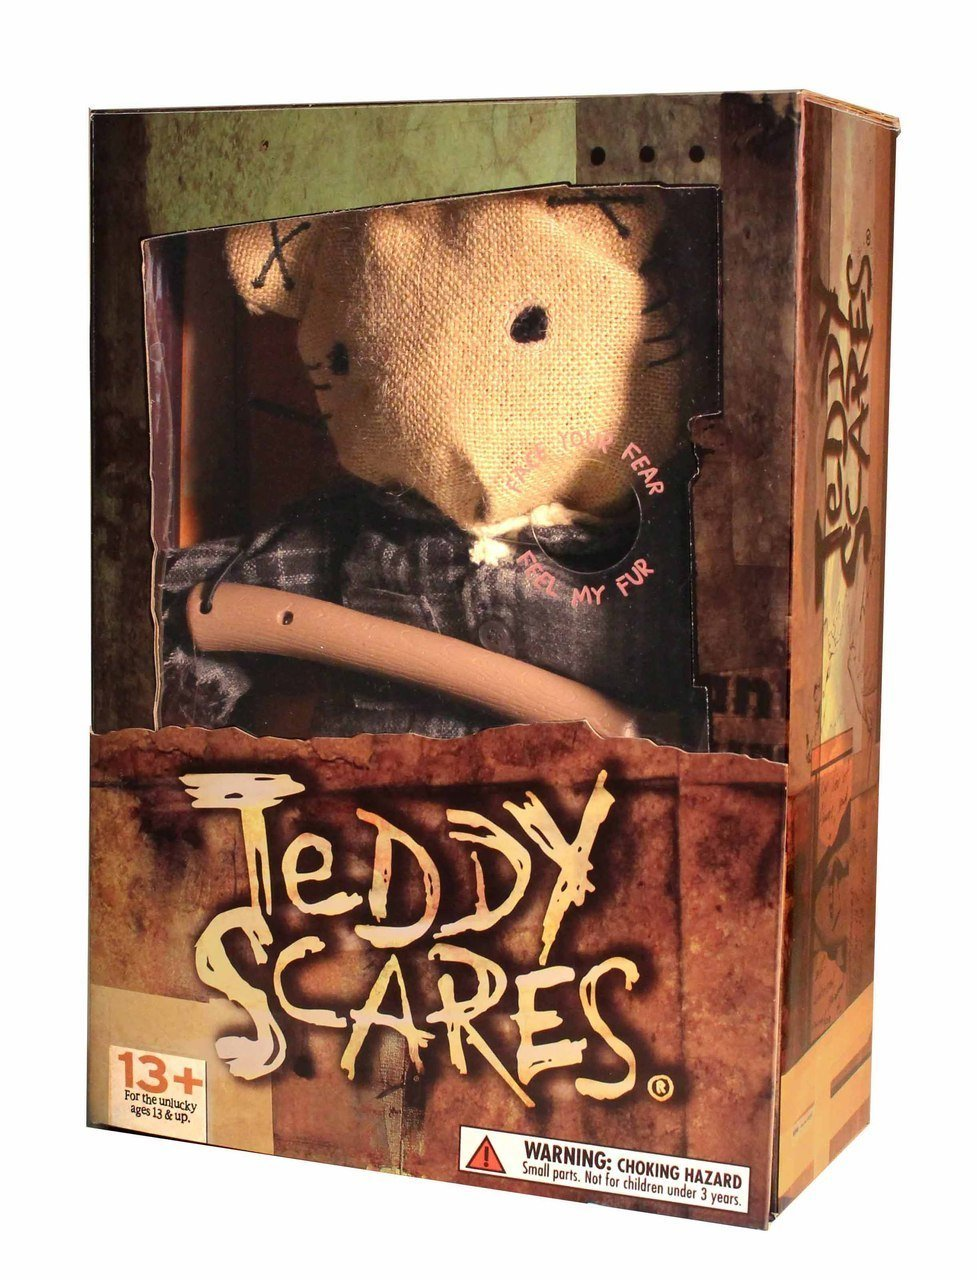 日本に Limited Edition Teddy Scares Collectors Edition Edition Limited - 30cm Redmond Gore 30cm B00MNKYSNK, Britain:83cf4704 --- senas.4x4.lt